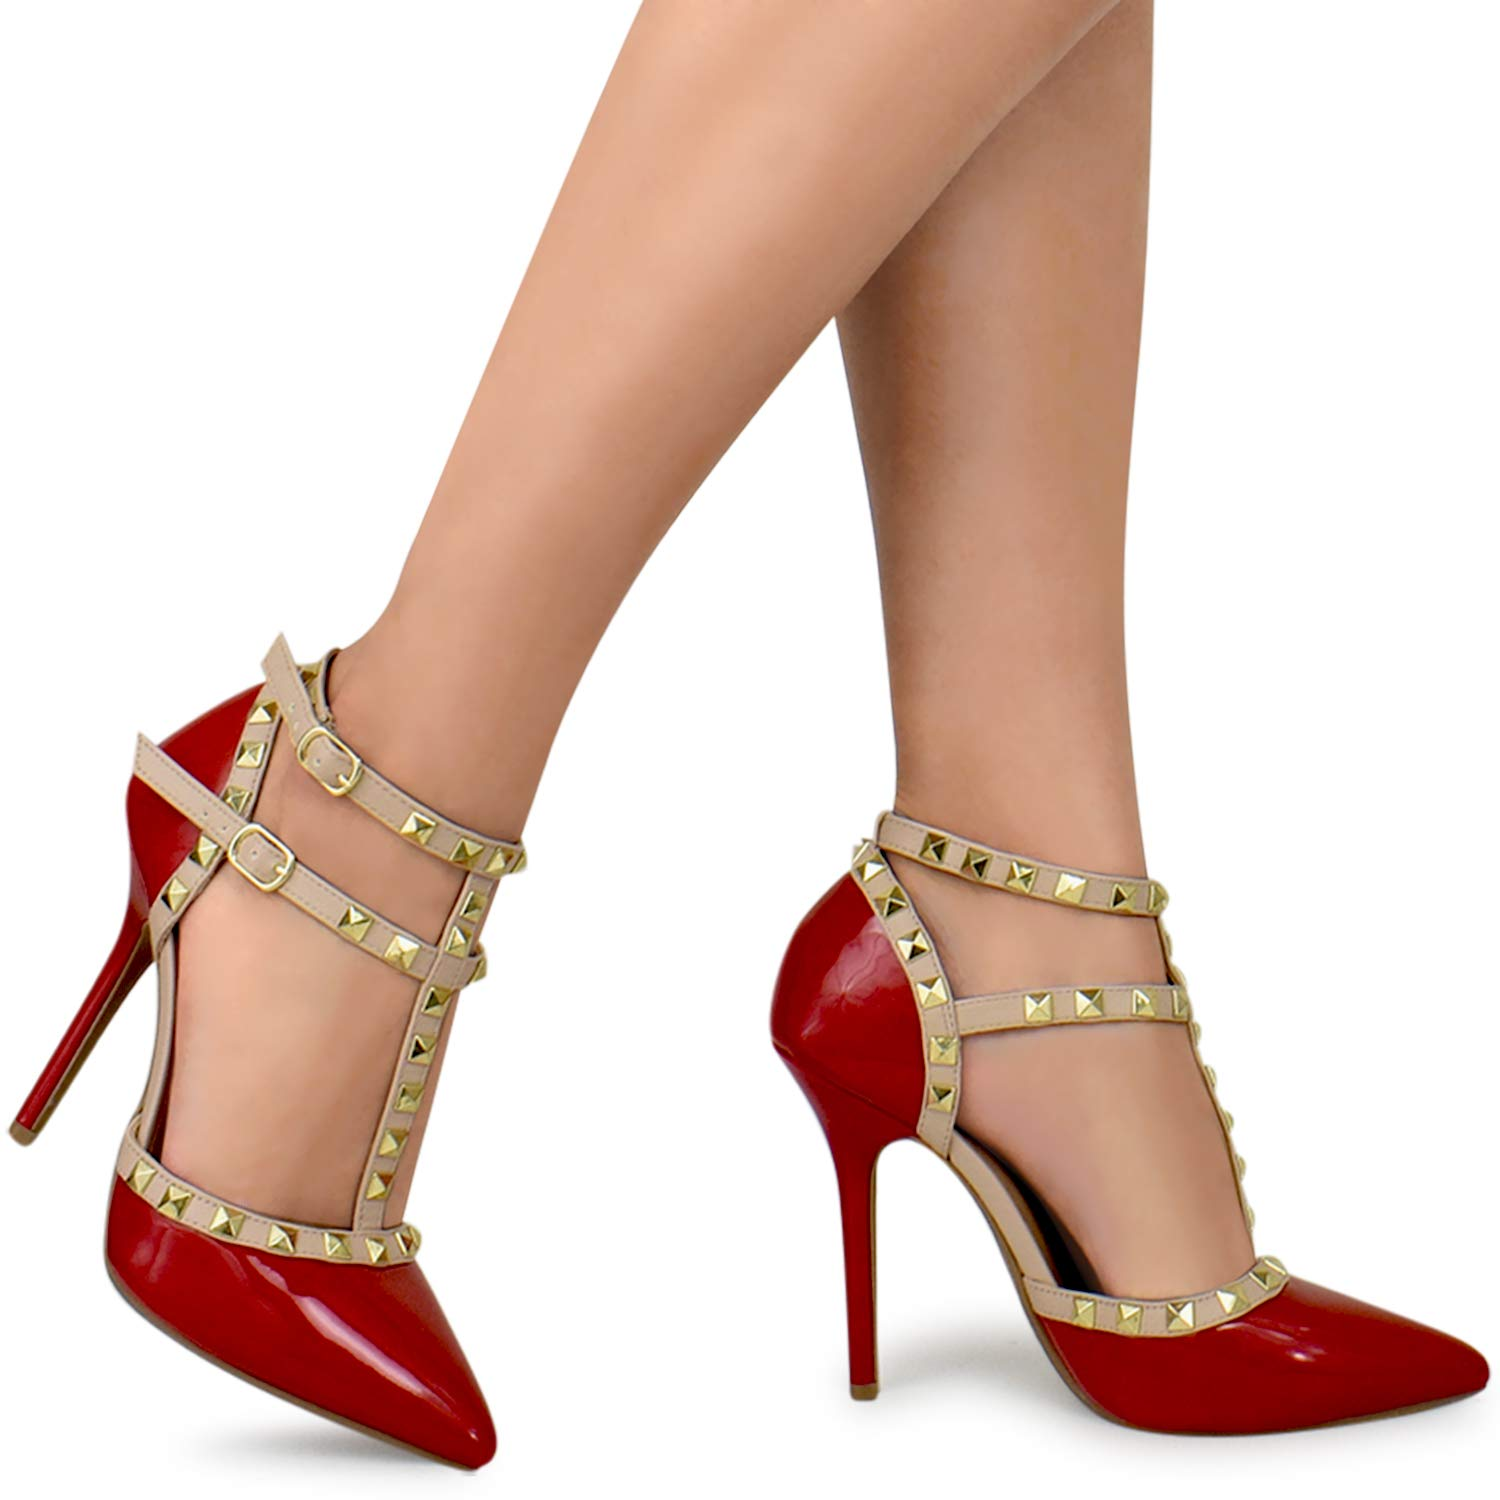 Premier Standard Womens Pointed Toe Studded Strappy High Heel Leather Pumps Stilettos Sandals